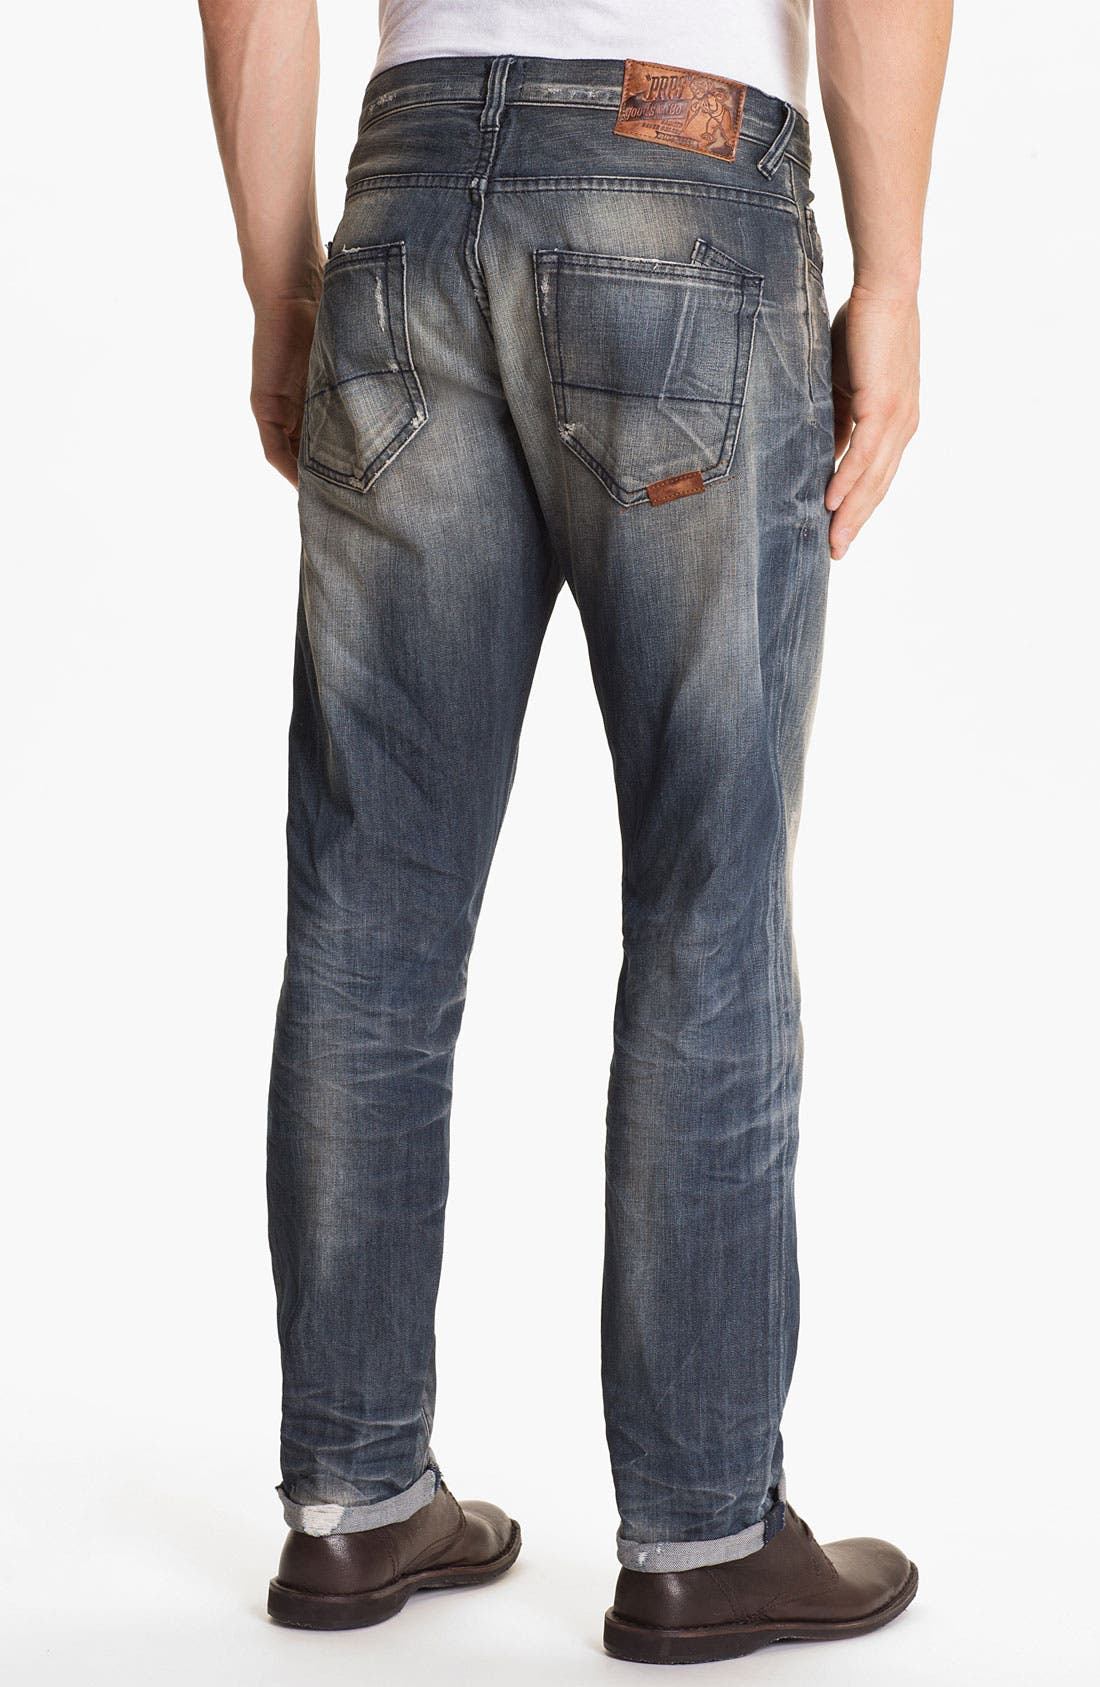 Alternate Image 1 Selected - PRPS 'Terra Nova Rambler' Slim Fit Jeans (Indigo)